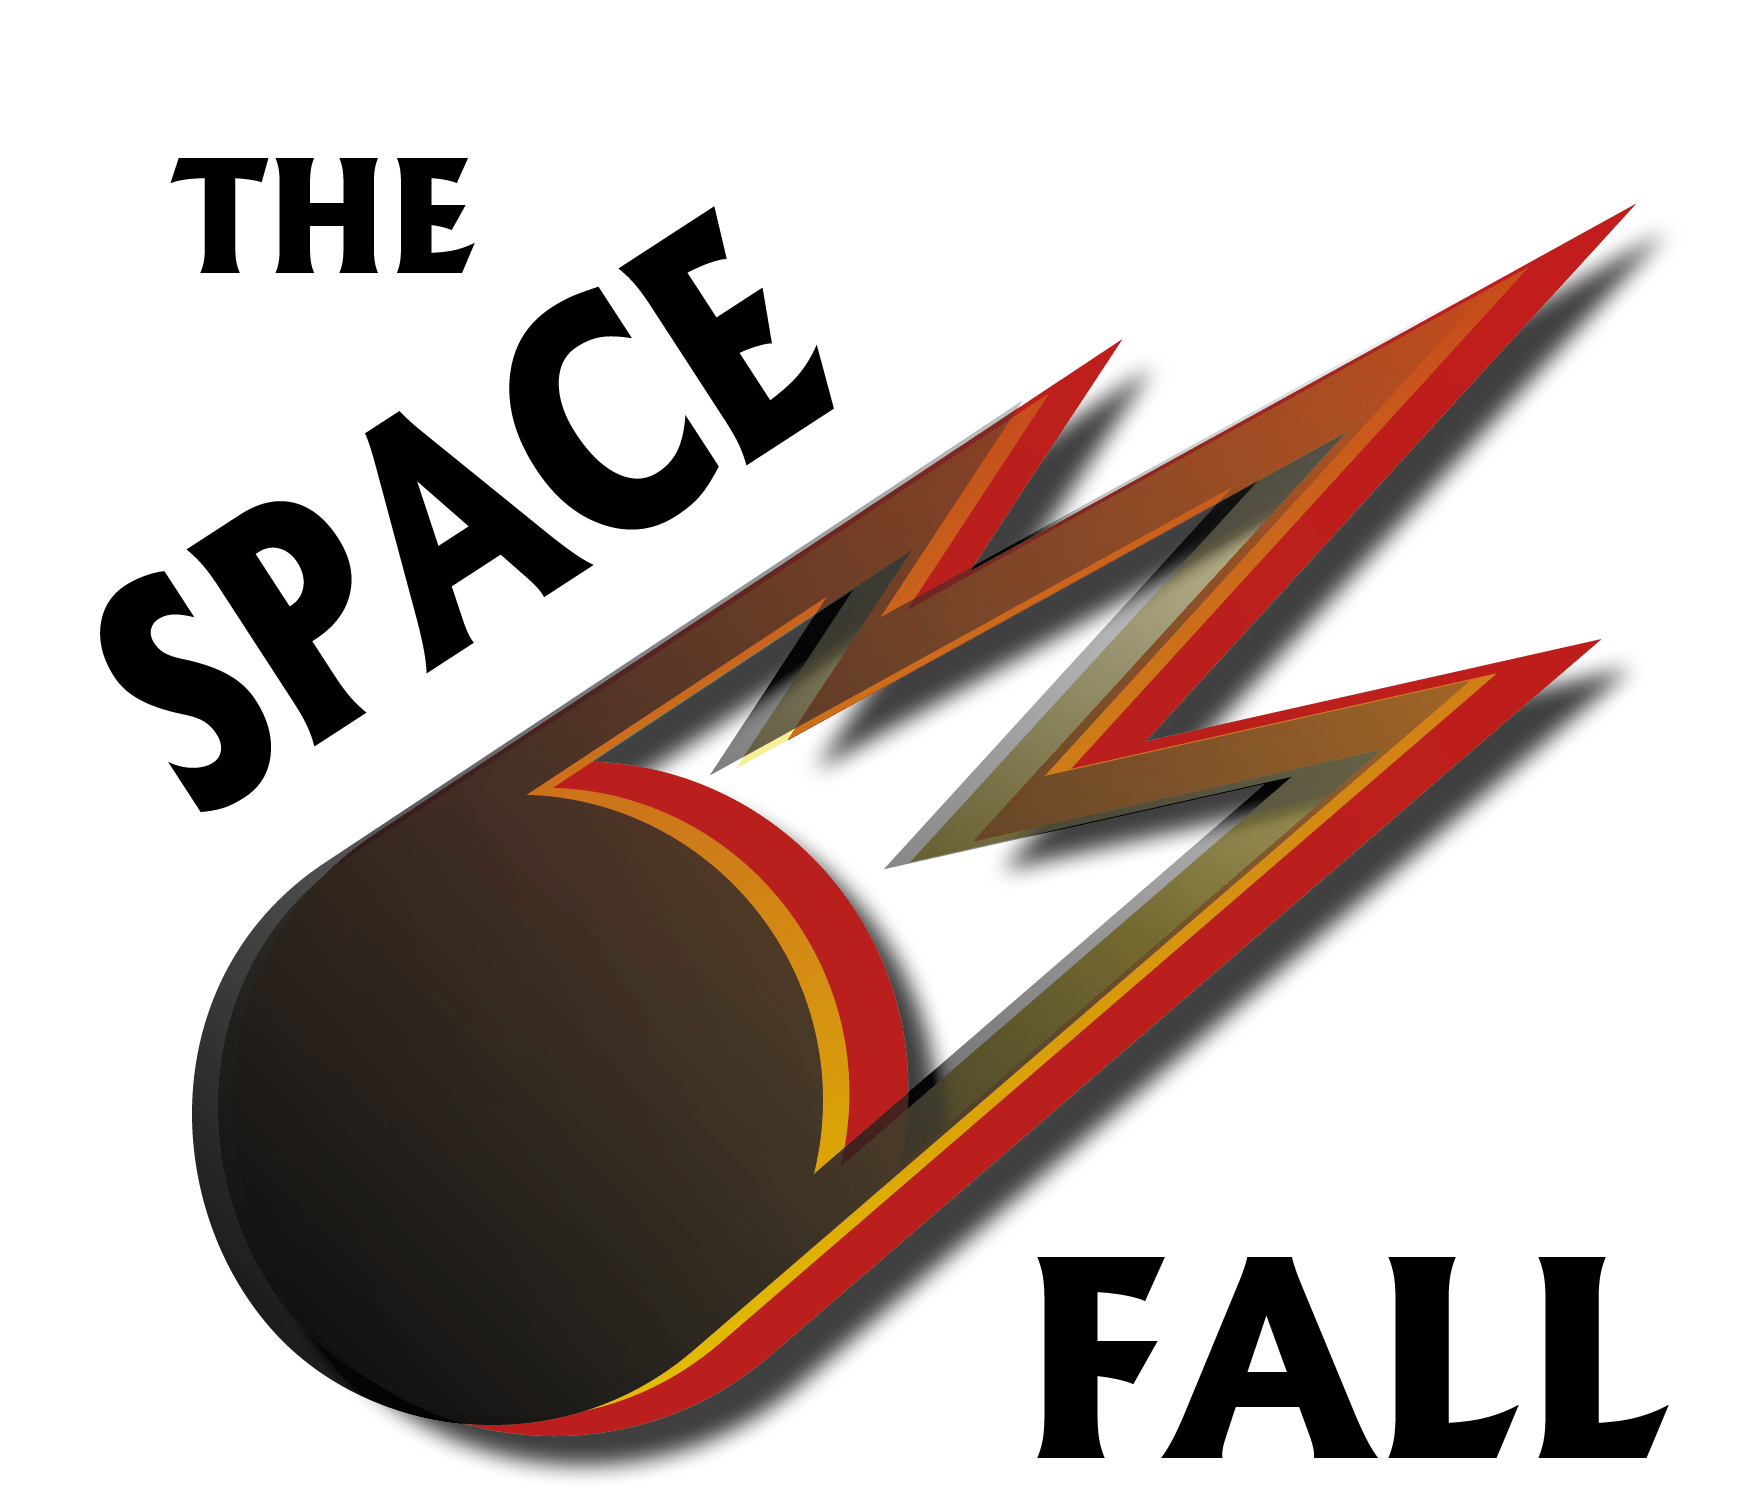 The Space Fall